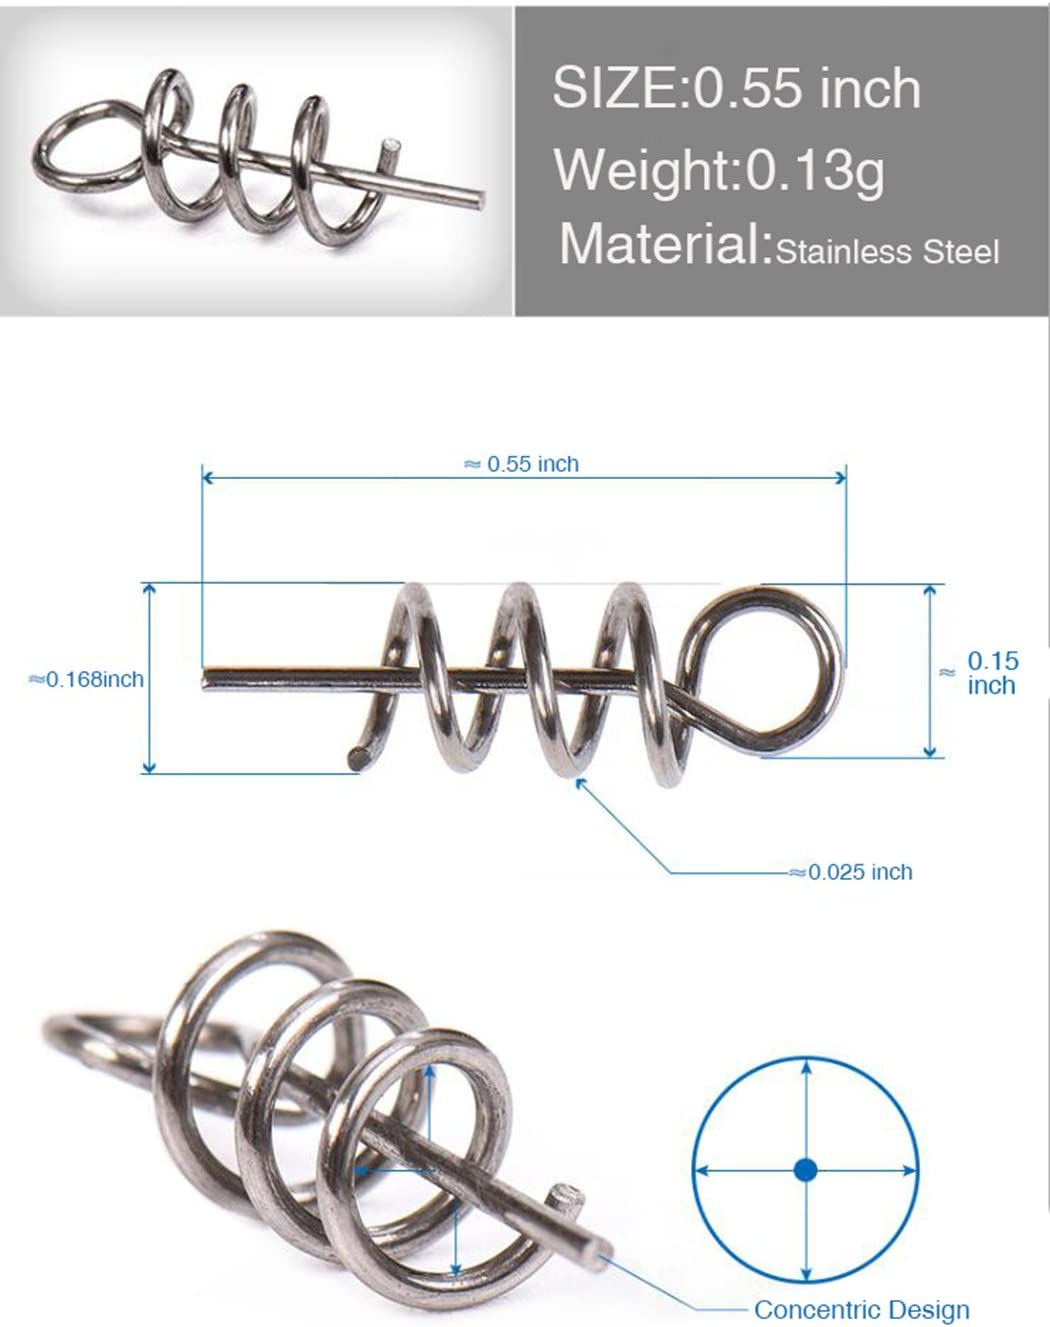 Aoyoho 15mm//26mm//33mm//42mm Soft Lure Bait Spring Twist Lock Outdoor Fishing Crank Hook Centering Pin for Soft Lure Bait Worm Crank